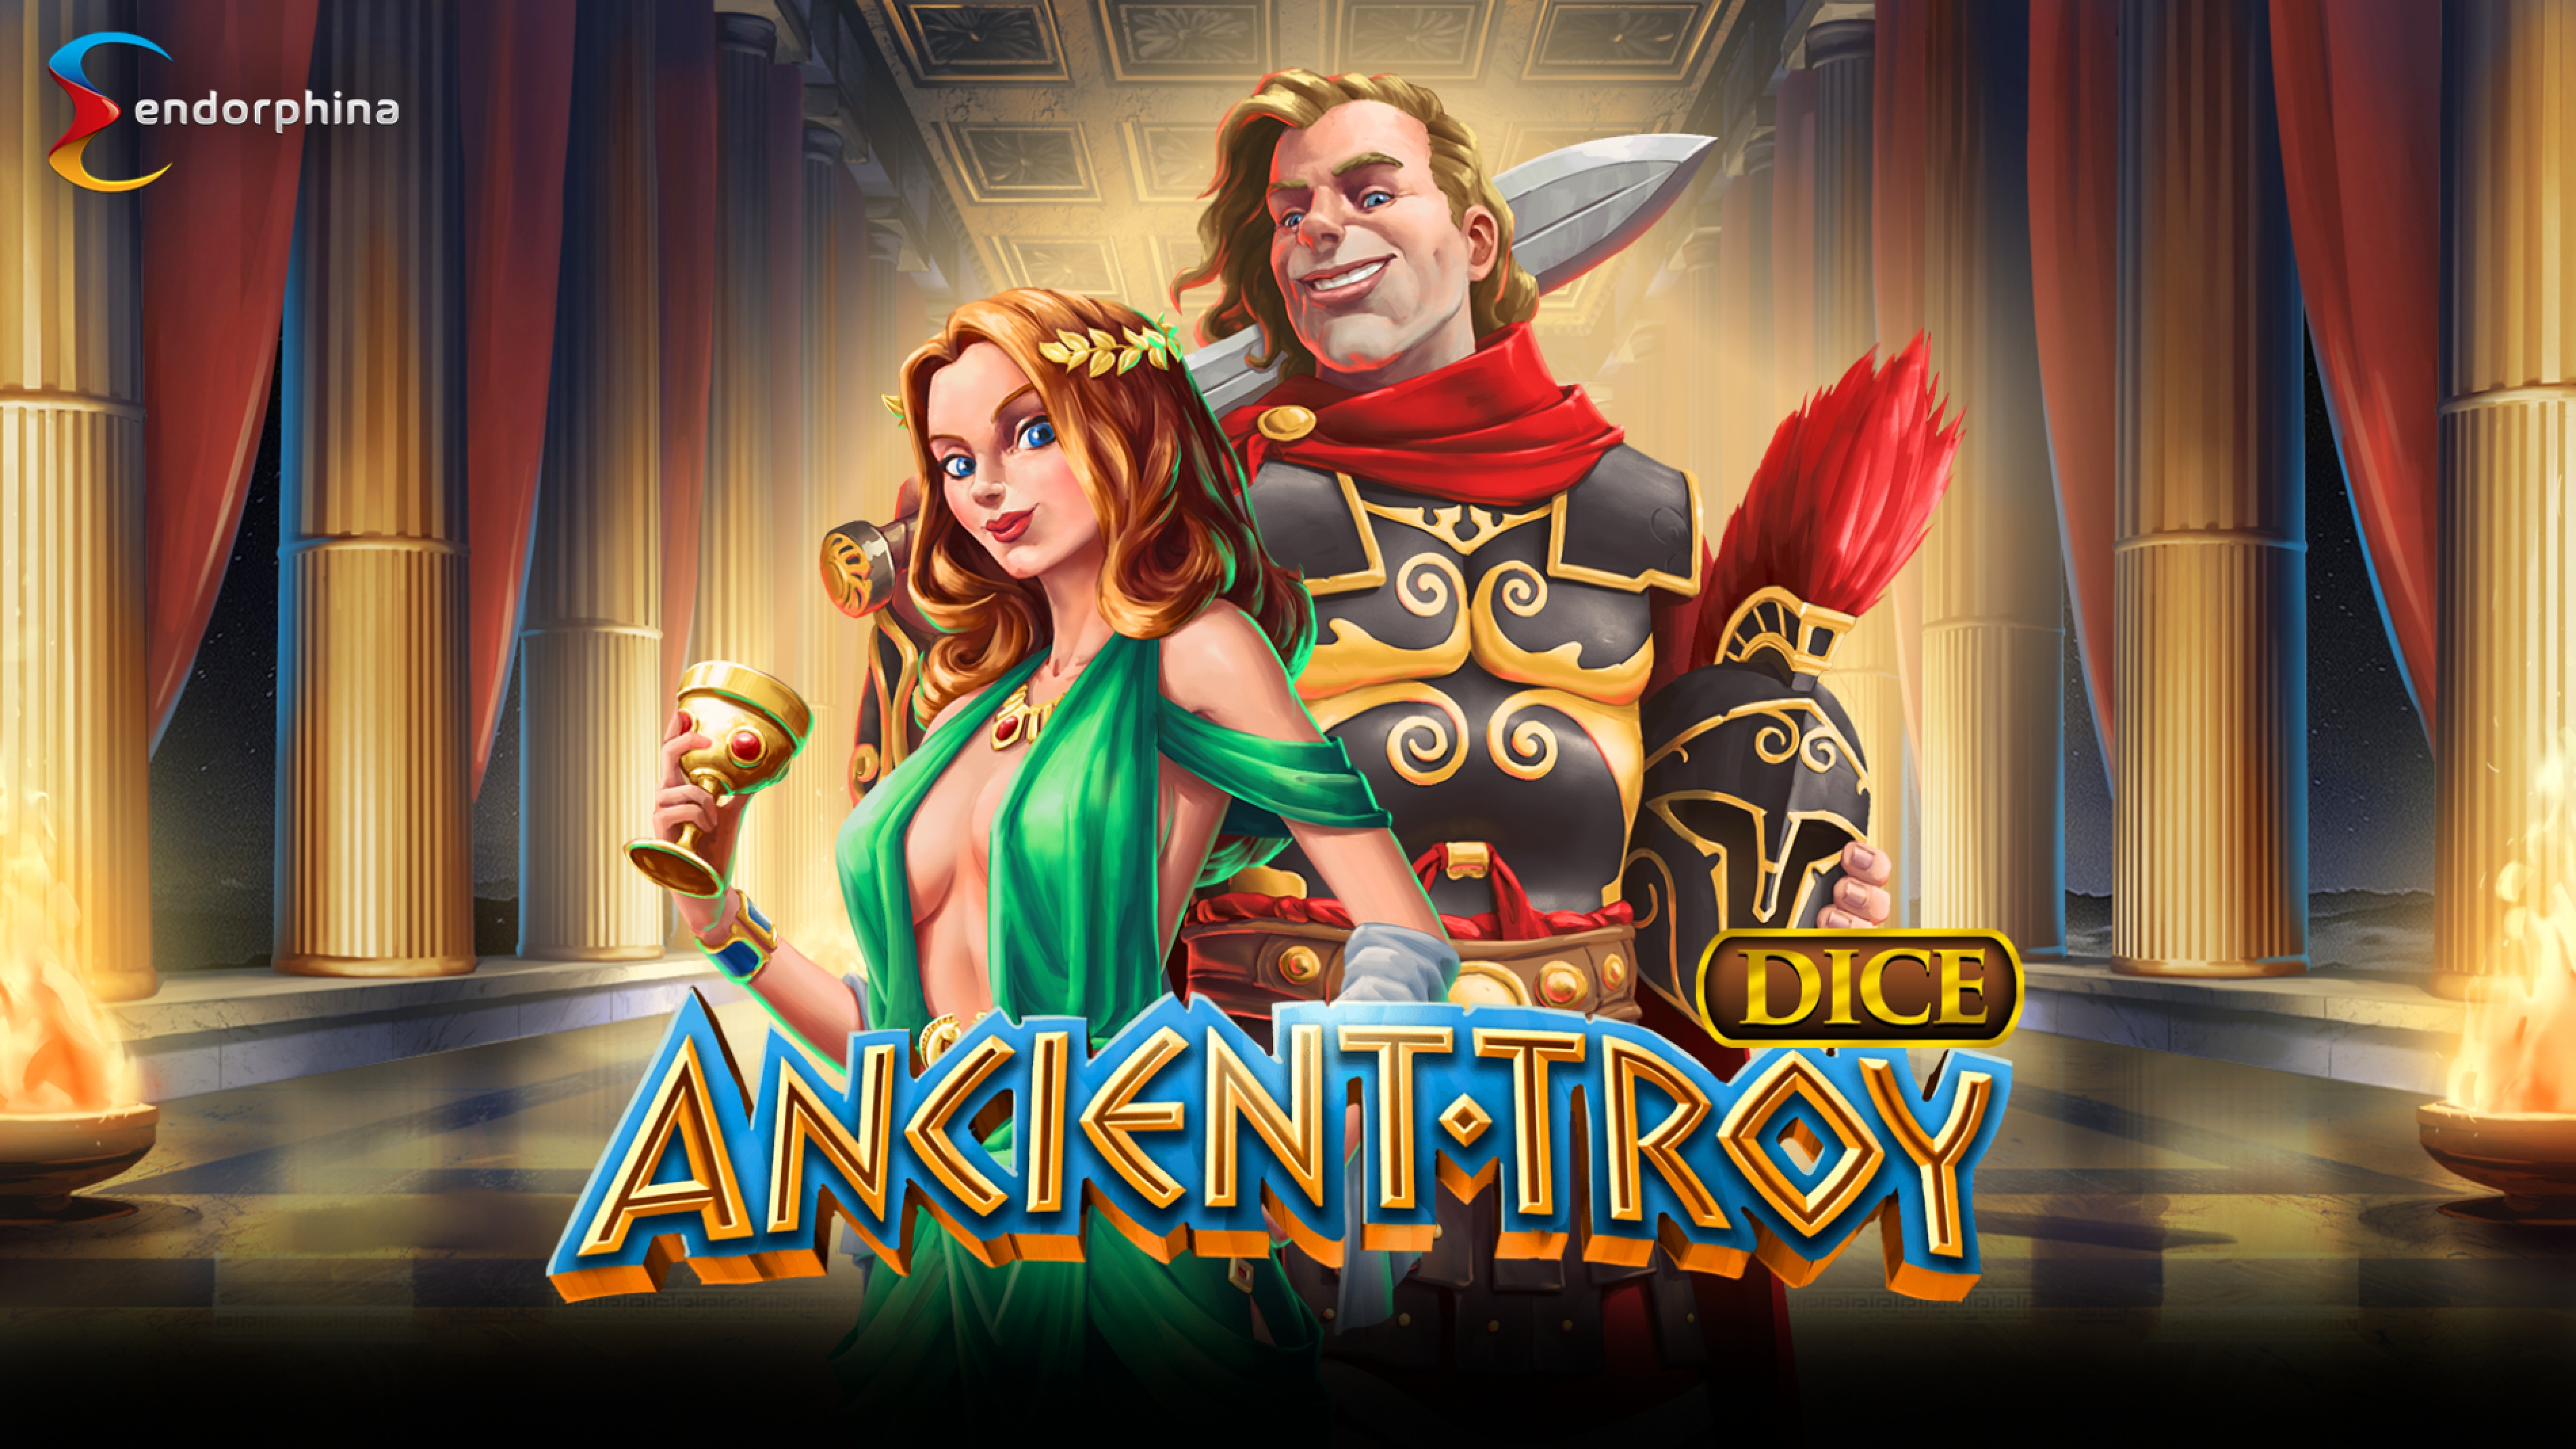 The Ancient Troy Dice Online Slot Demo Game by Endorphina